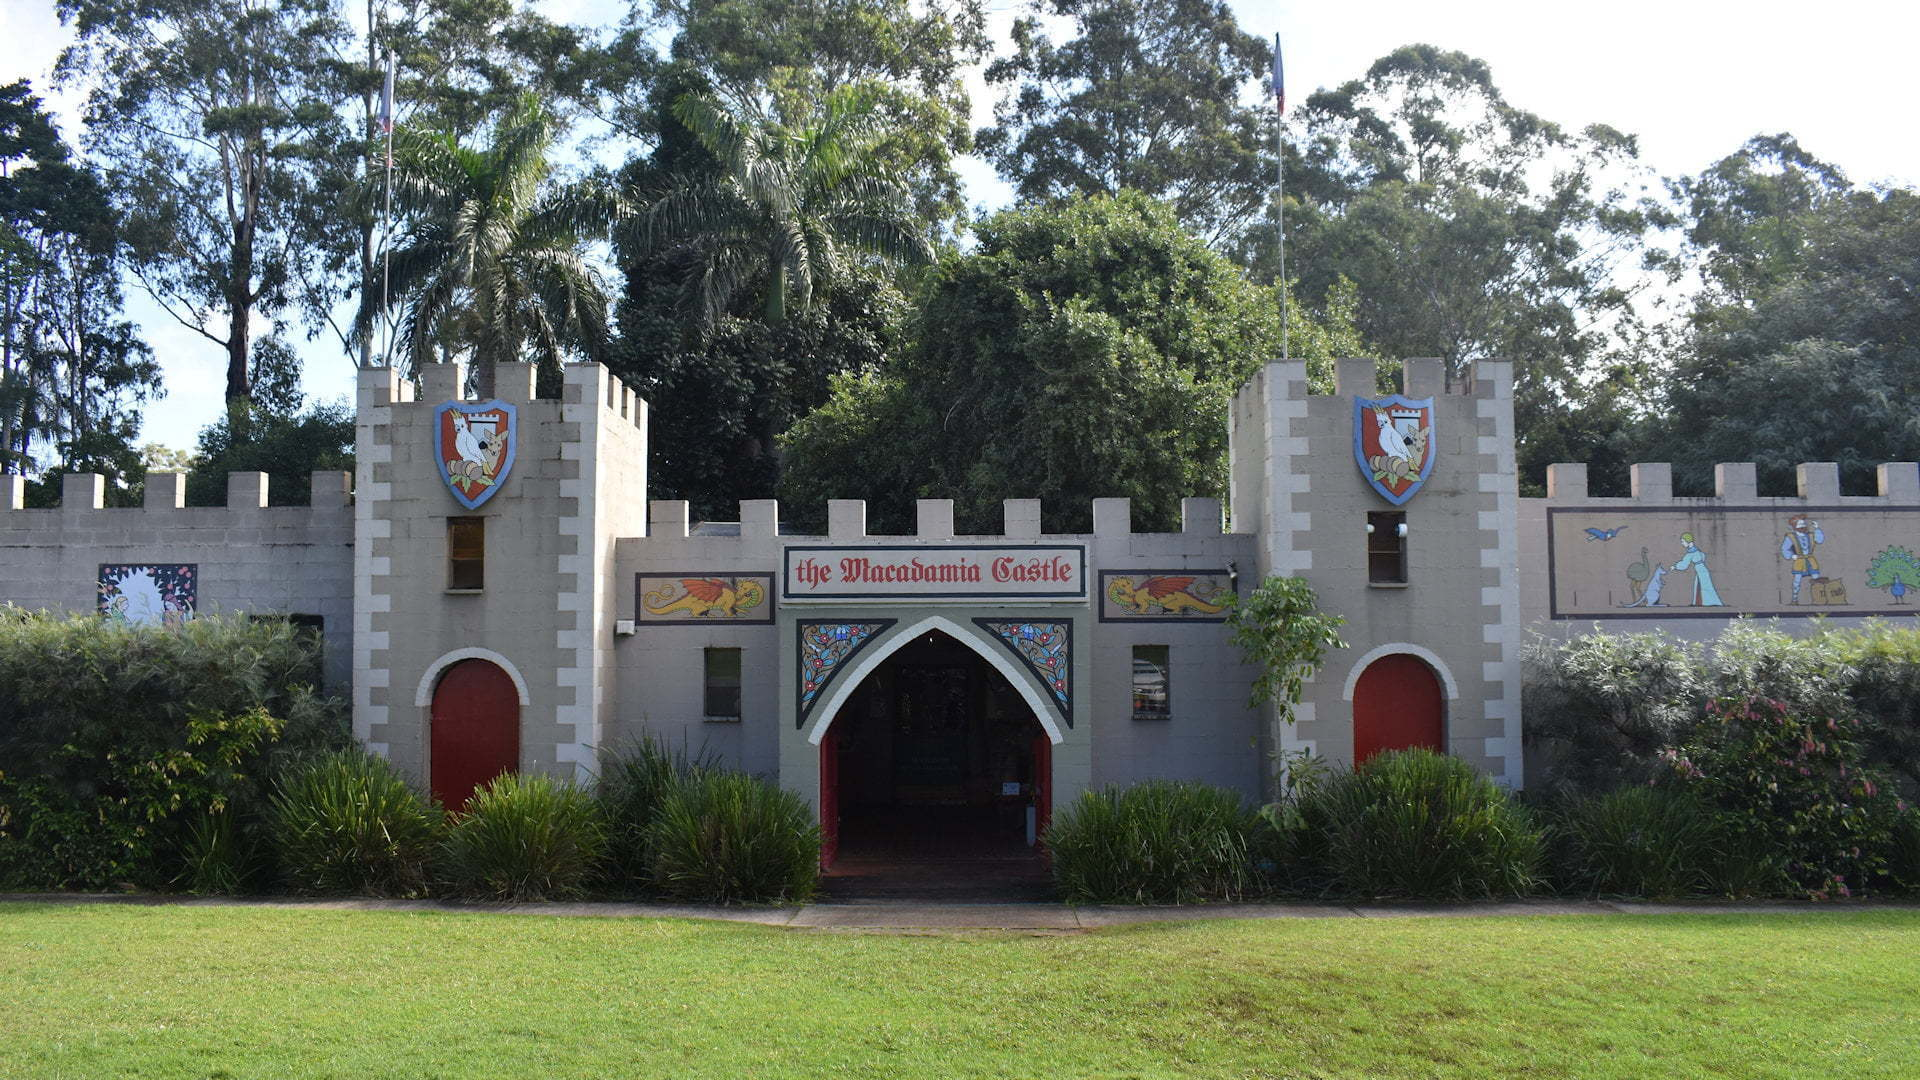 Castle shaped building with entrance in the centre, tower columns either side and walls continuing left and right, taken at the Macadamia Castle north of Ballina